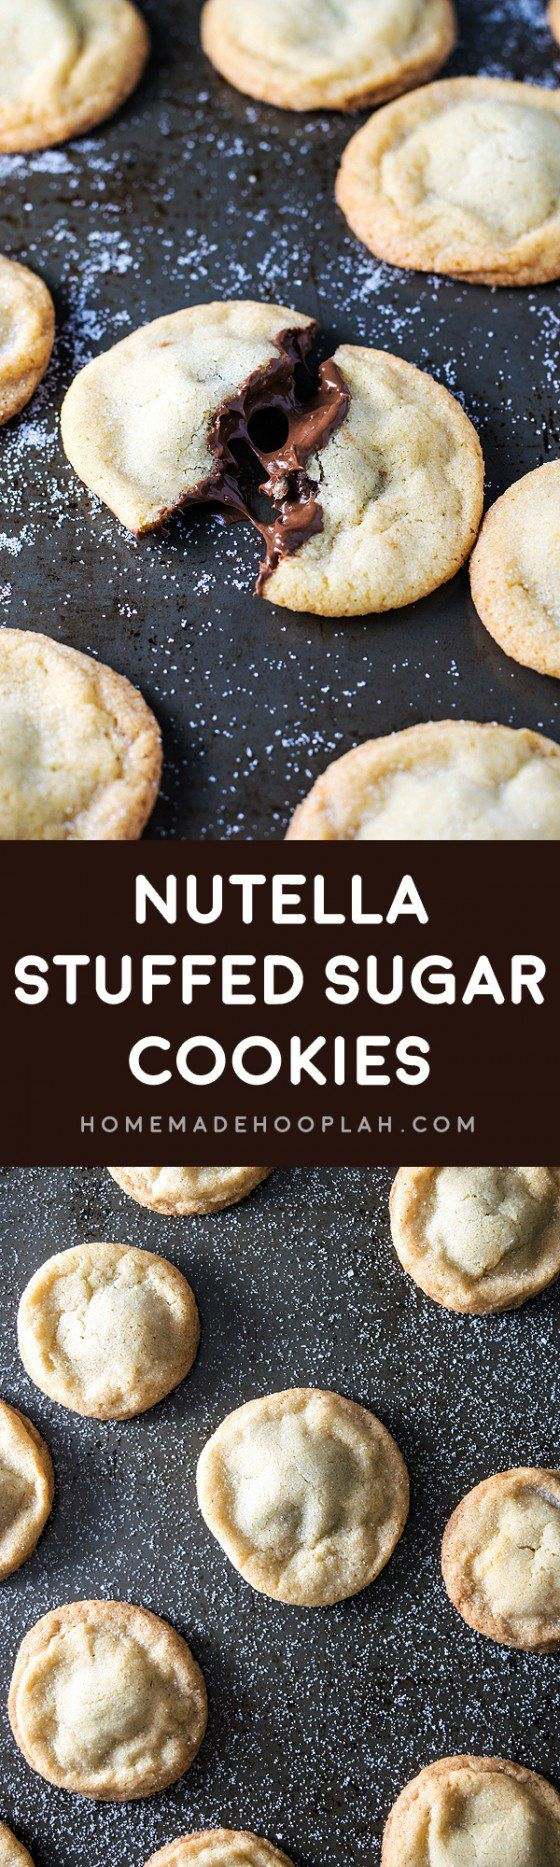 Nutella Stuffed Sugar Cookies! Old fashioned soft and chewy sugar cookies stuffed with creamy Nutella. These Nutella cookies are delicious as they sounds! | HomemadeHooplah.com